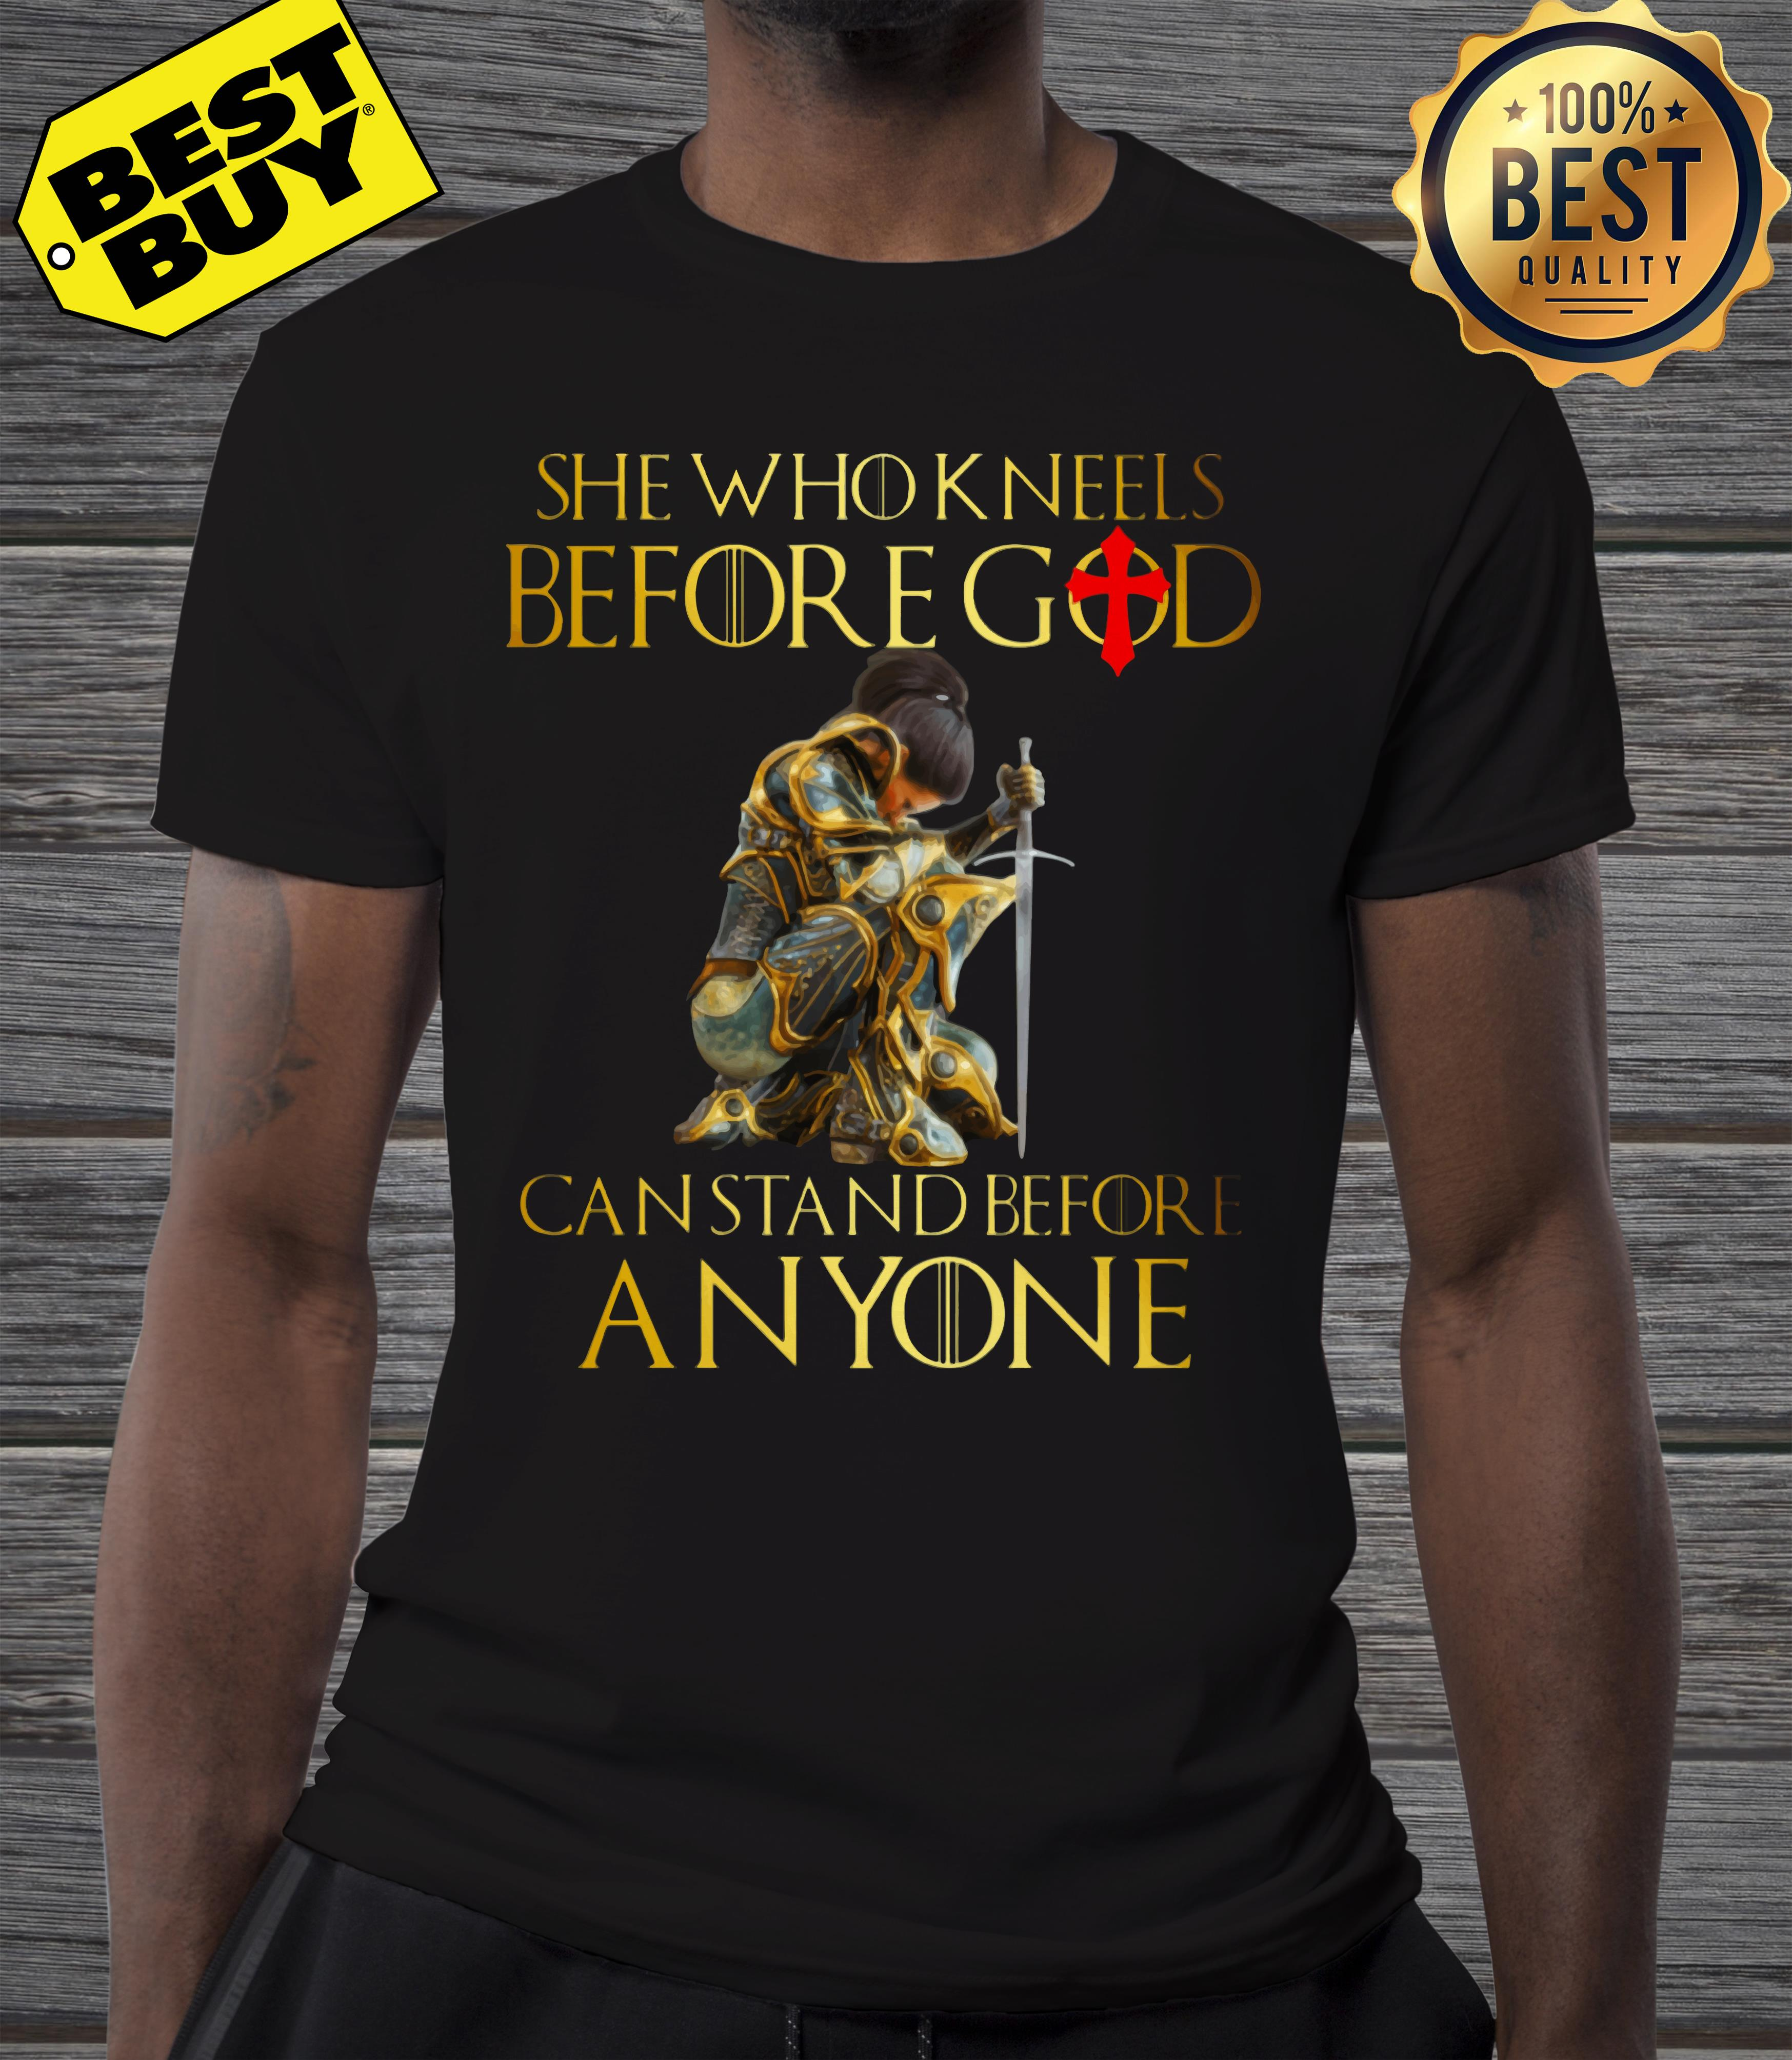 She who kneels before god can stand before anyone shirt